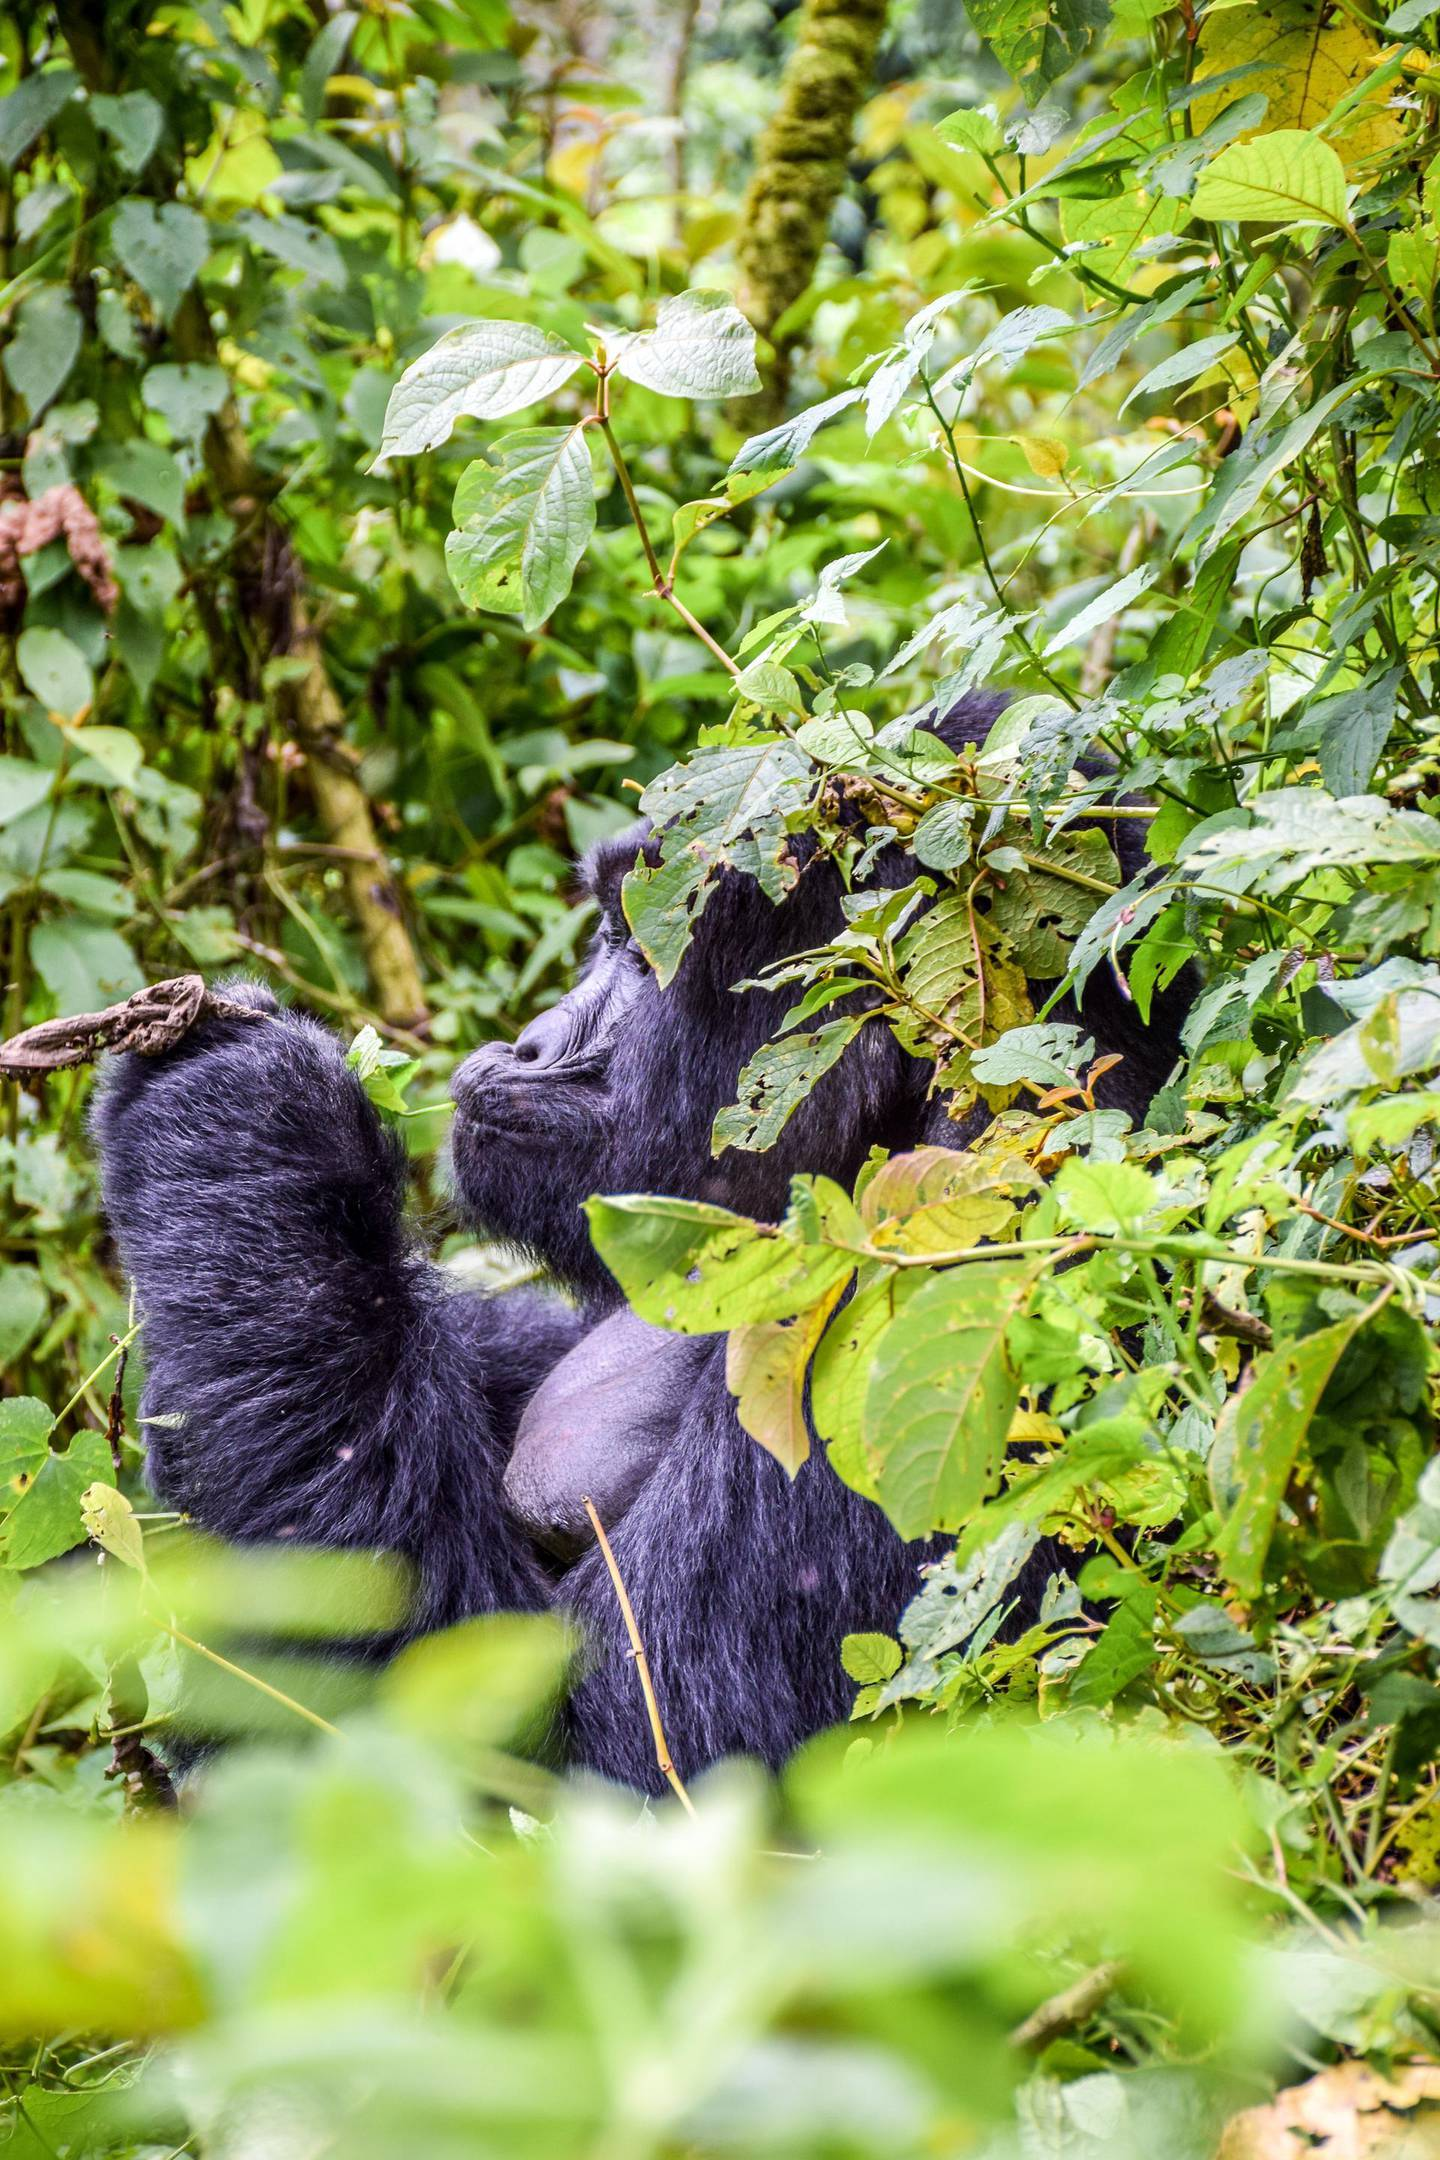 Photographed in Bwindi Impenetrable Forest, Uganda, this impressive gorilla is obviously enjoyinghis meal. Getty Image